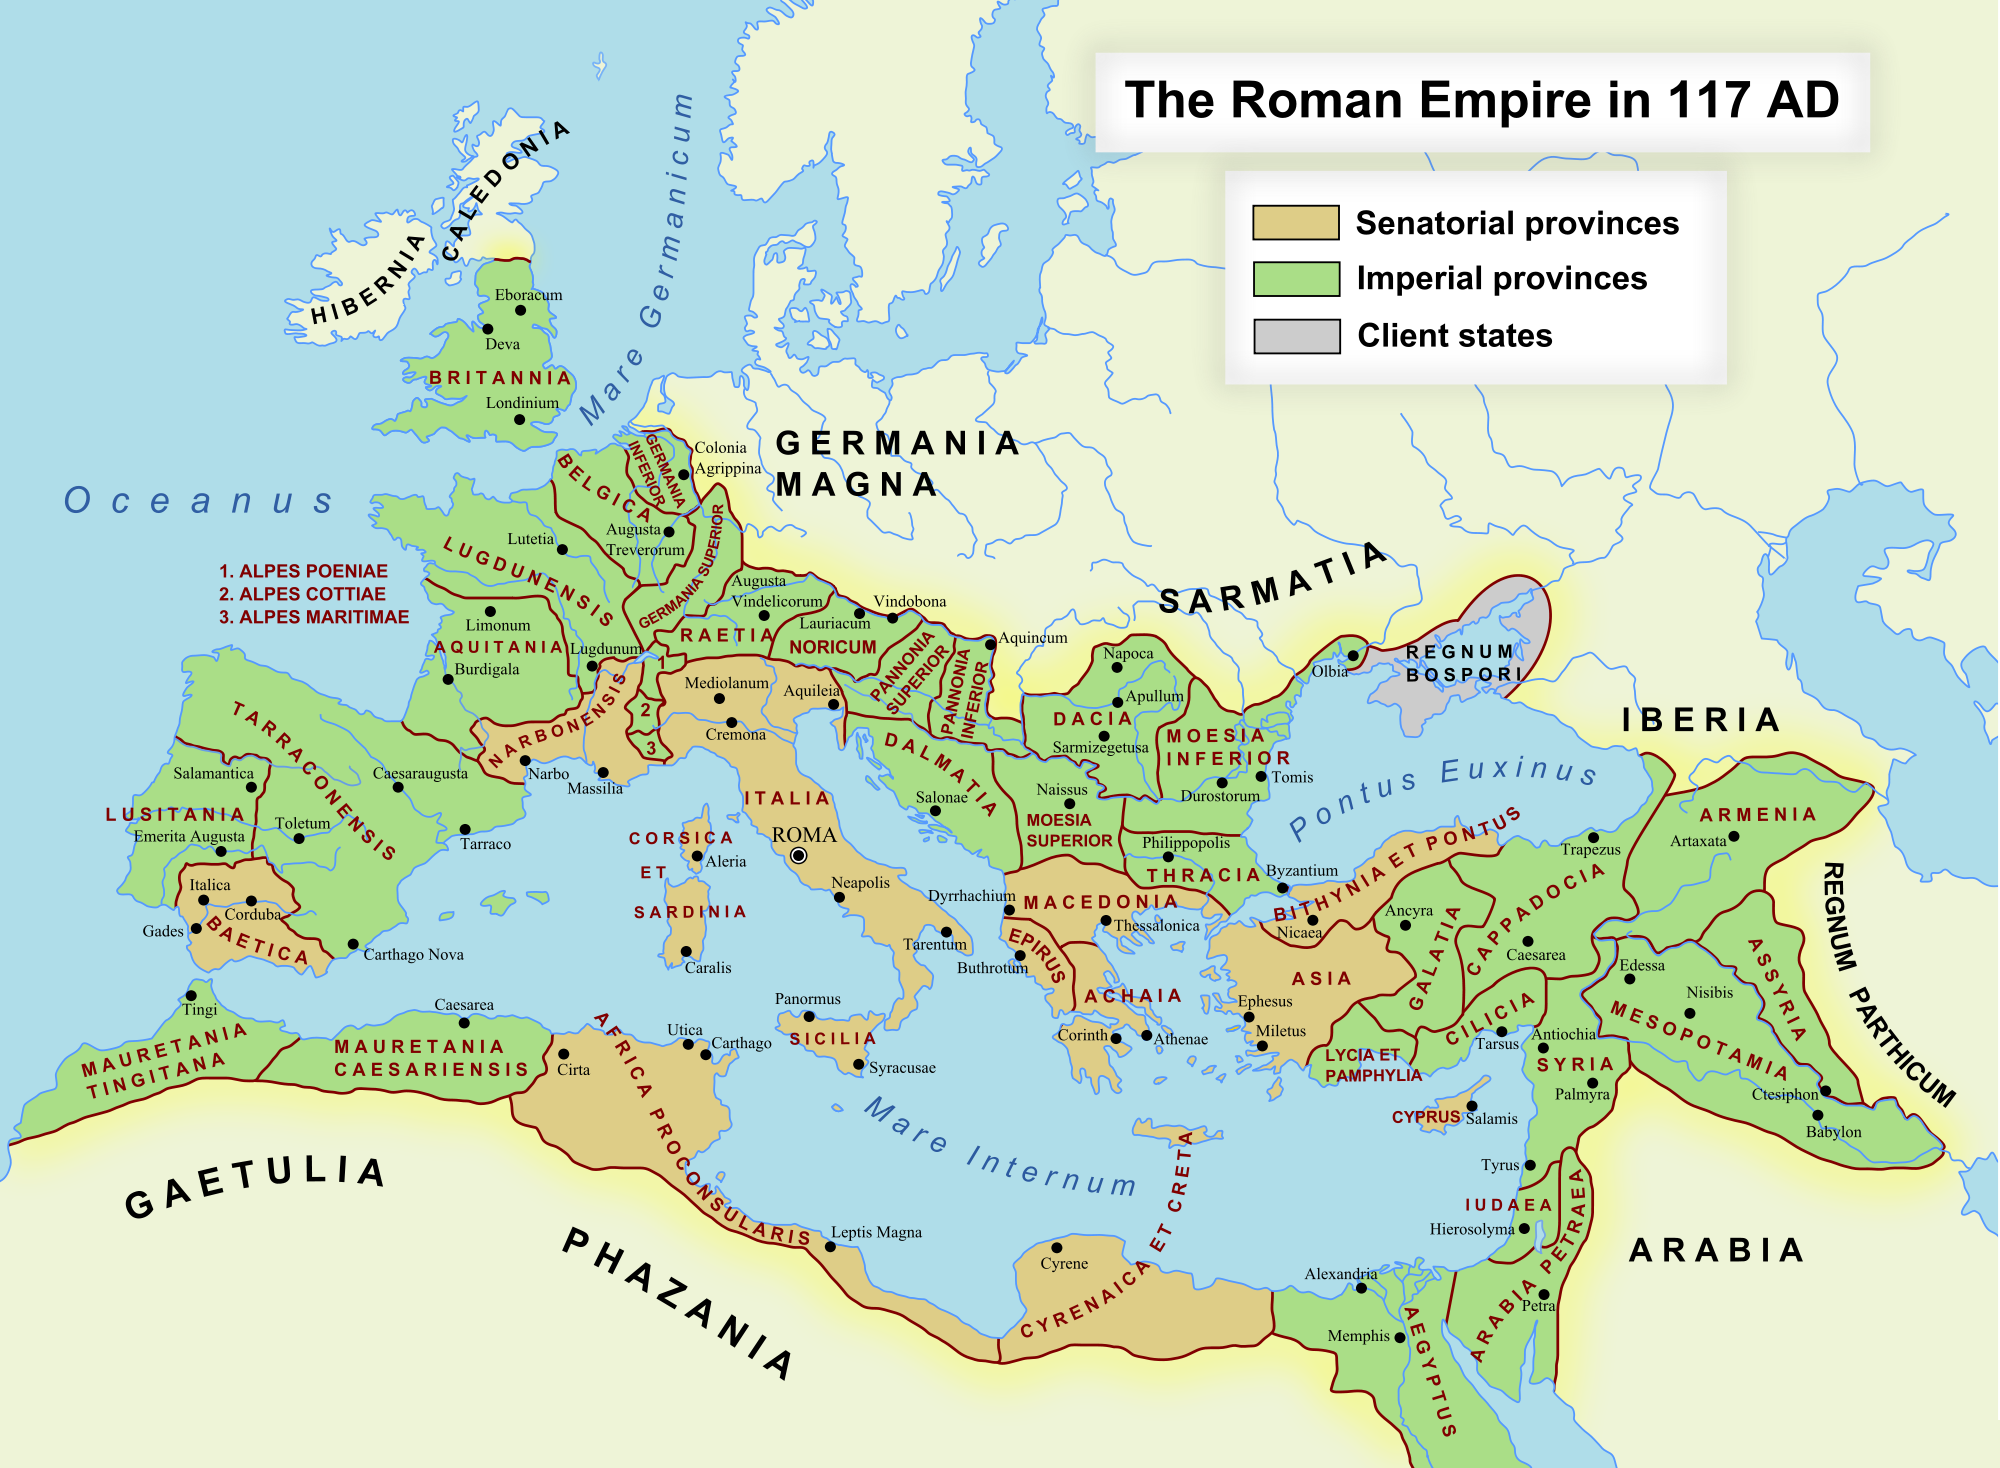 The Roman Empire Map Roman Empire in 117 CE (Illustration)   Ancient History Encyclopedia